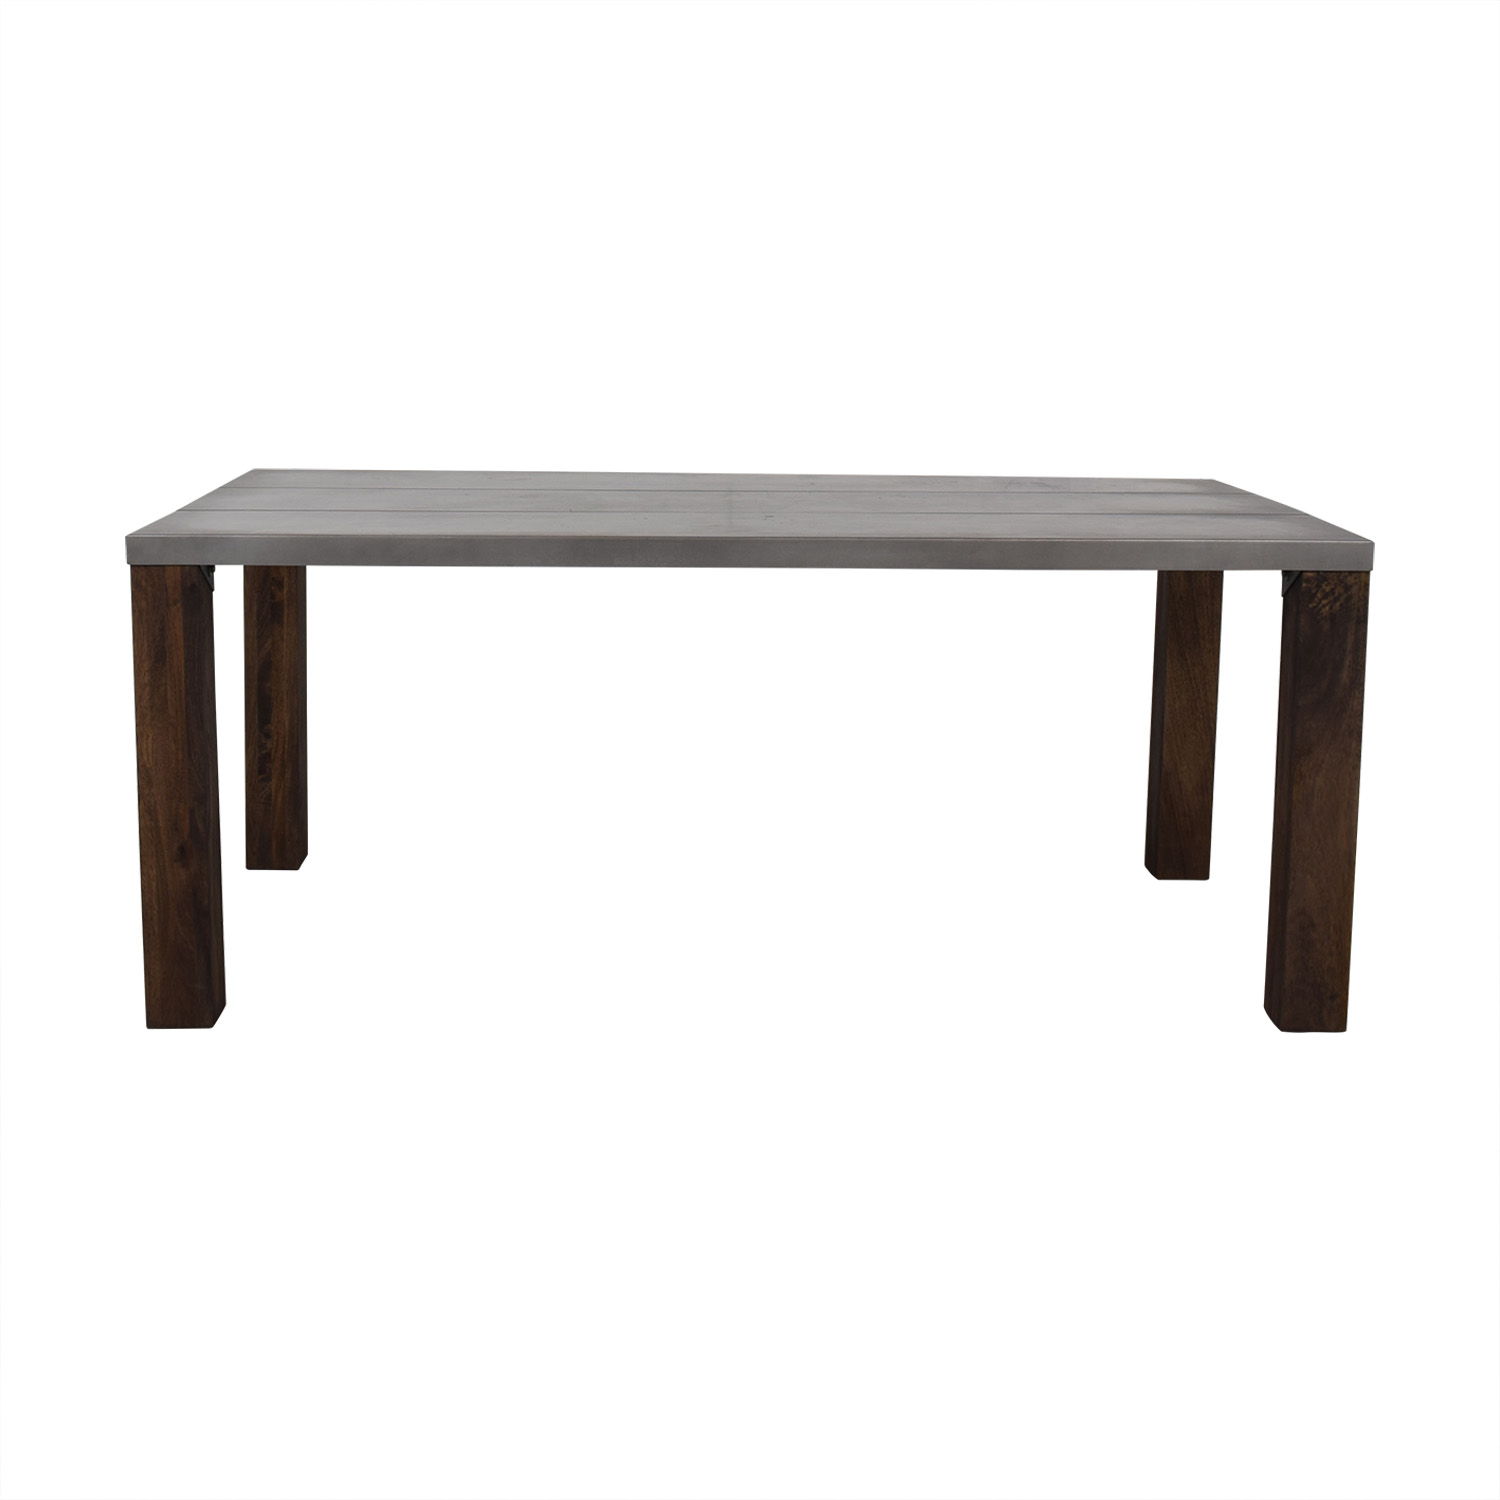 Crate & Barrel Crate & Barrel Galvin Metal Top Dining Table Dinner Tables